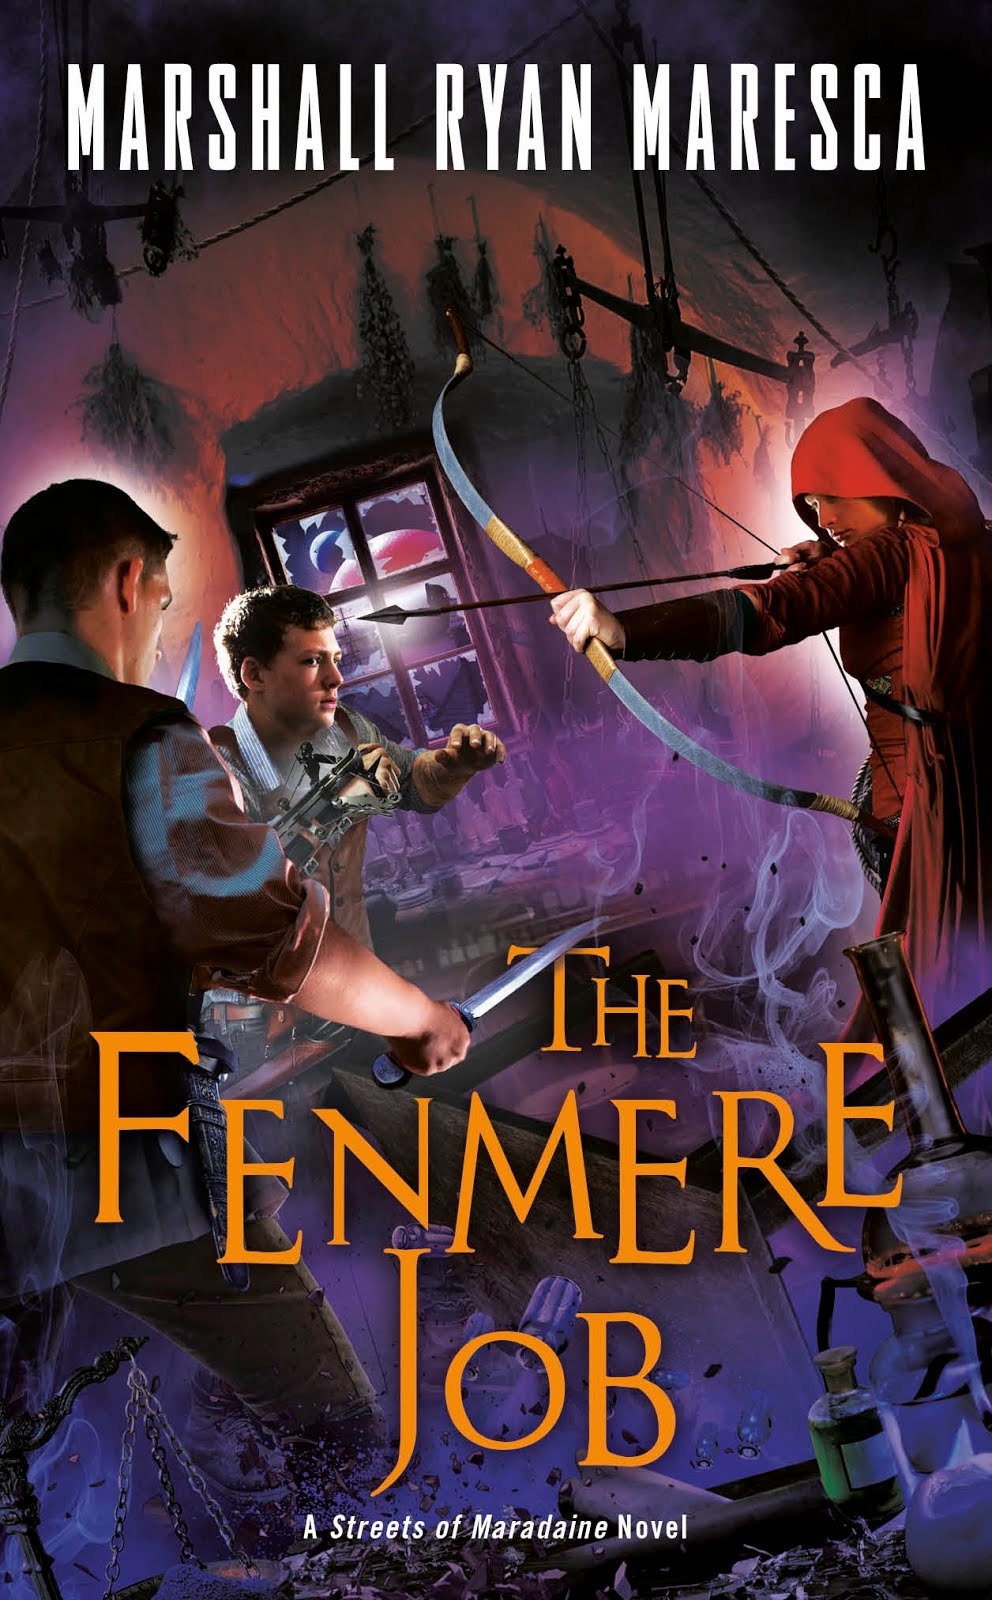 The Fenmere Job (Streets of Maradaine Bk3)